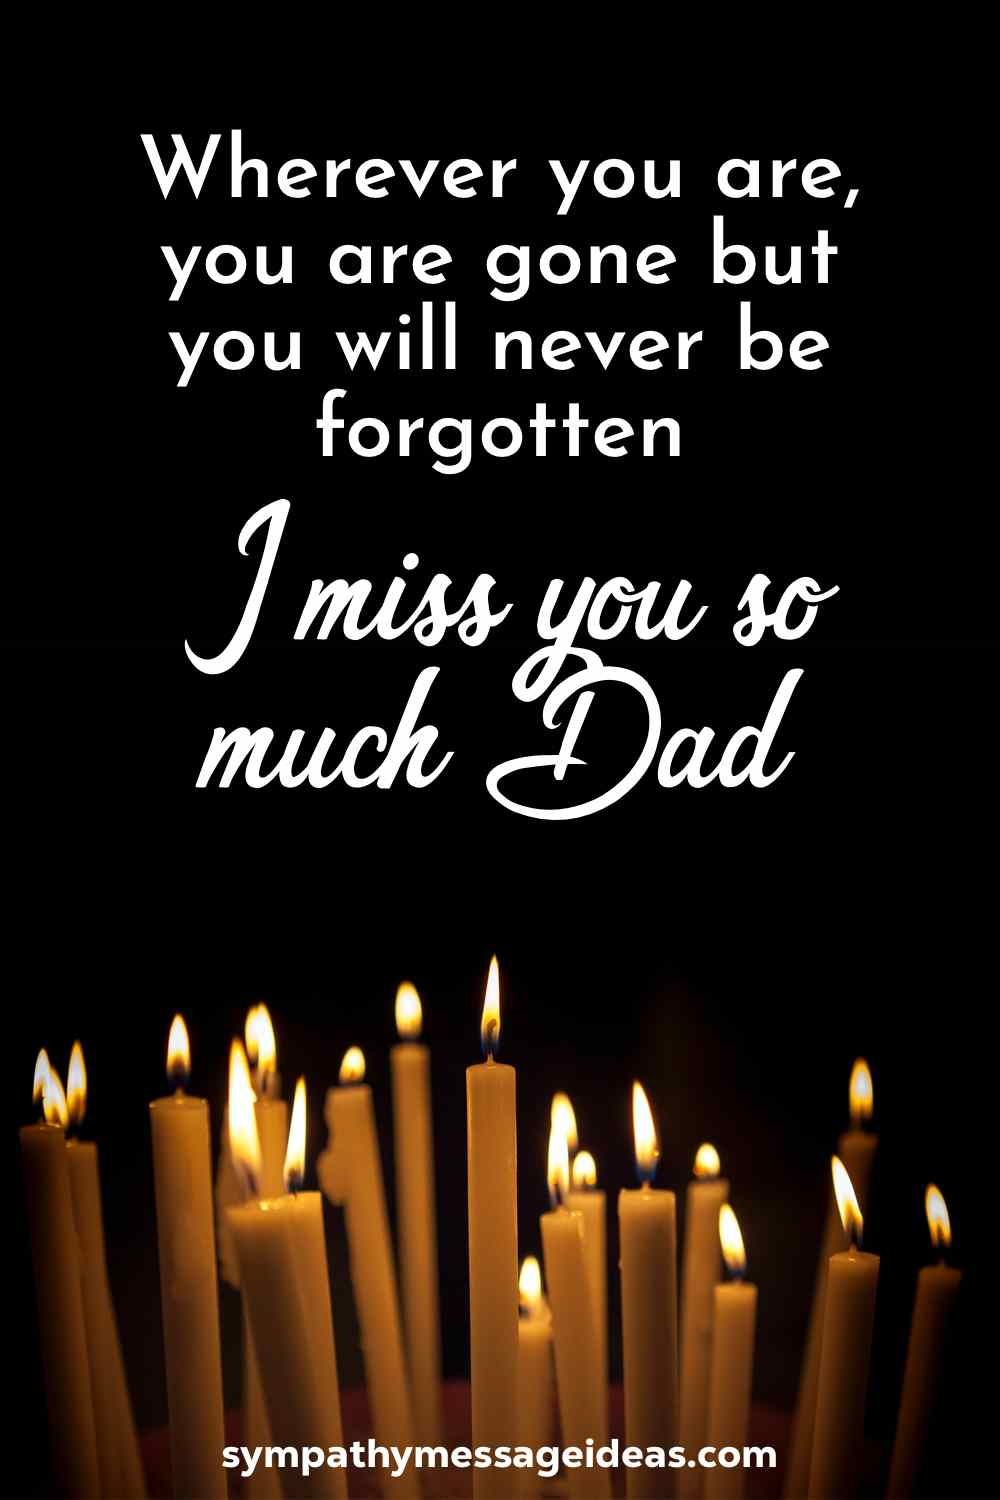 I miss you dad so much